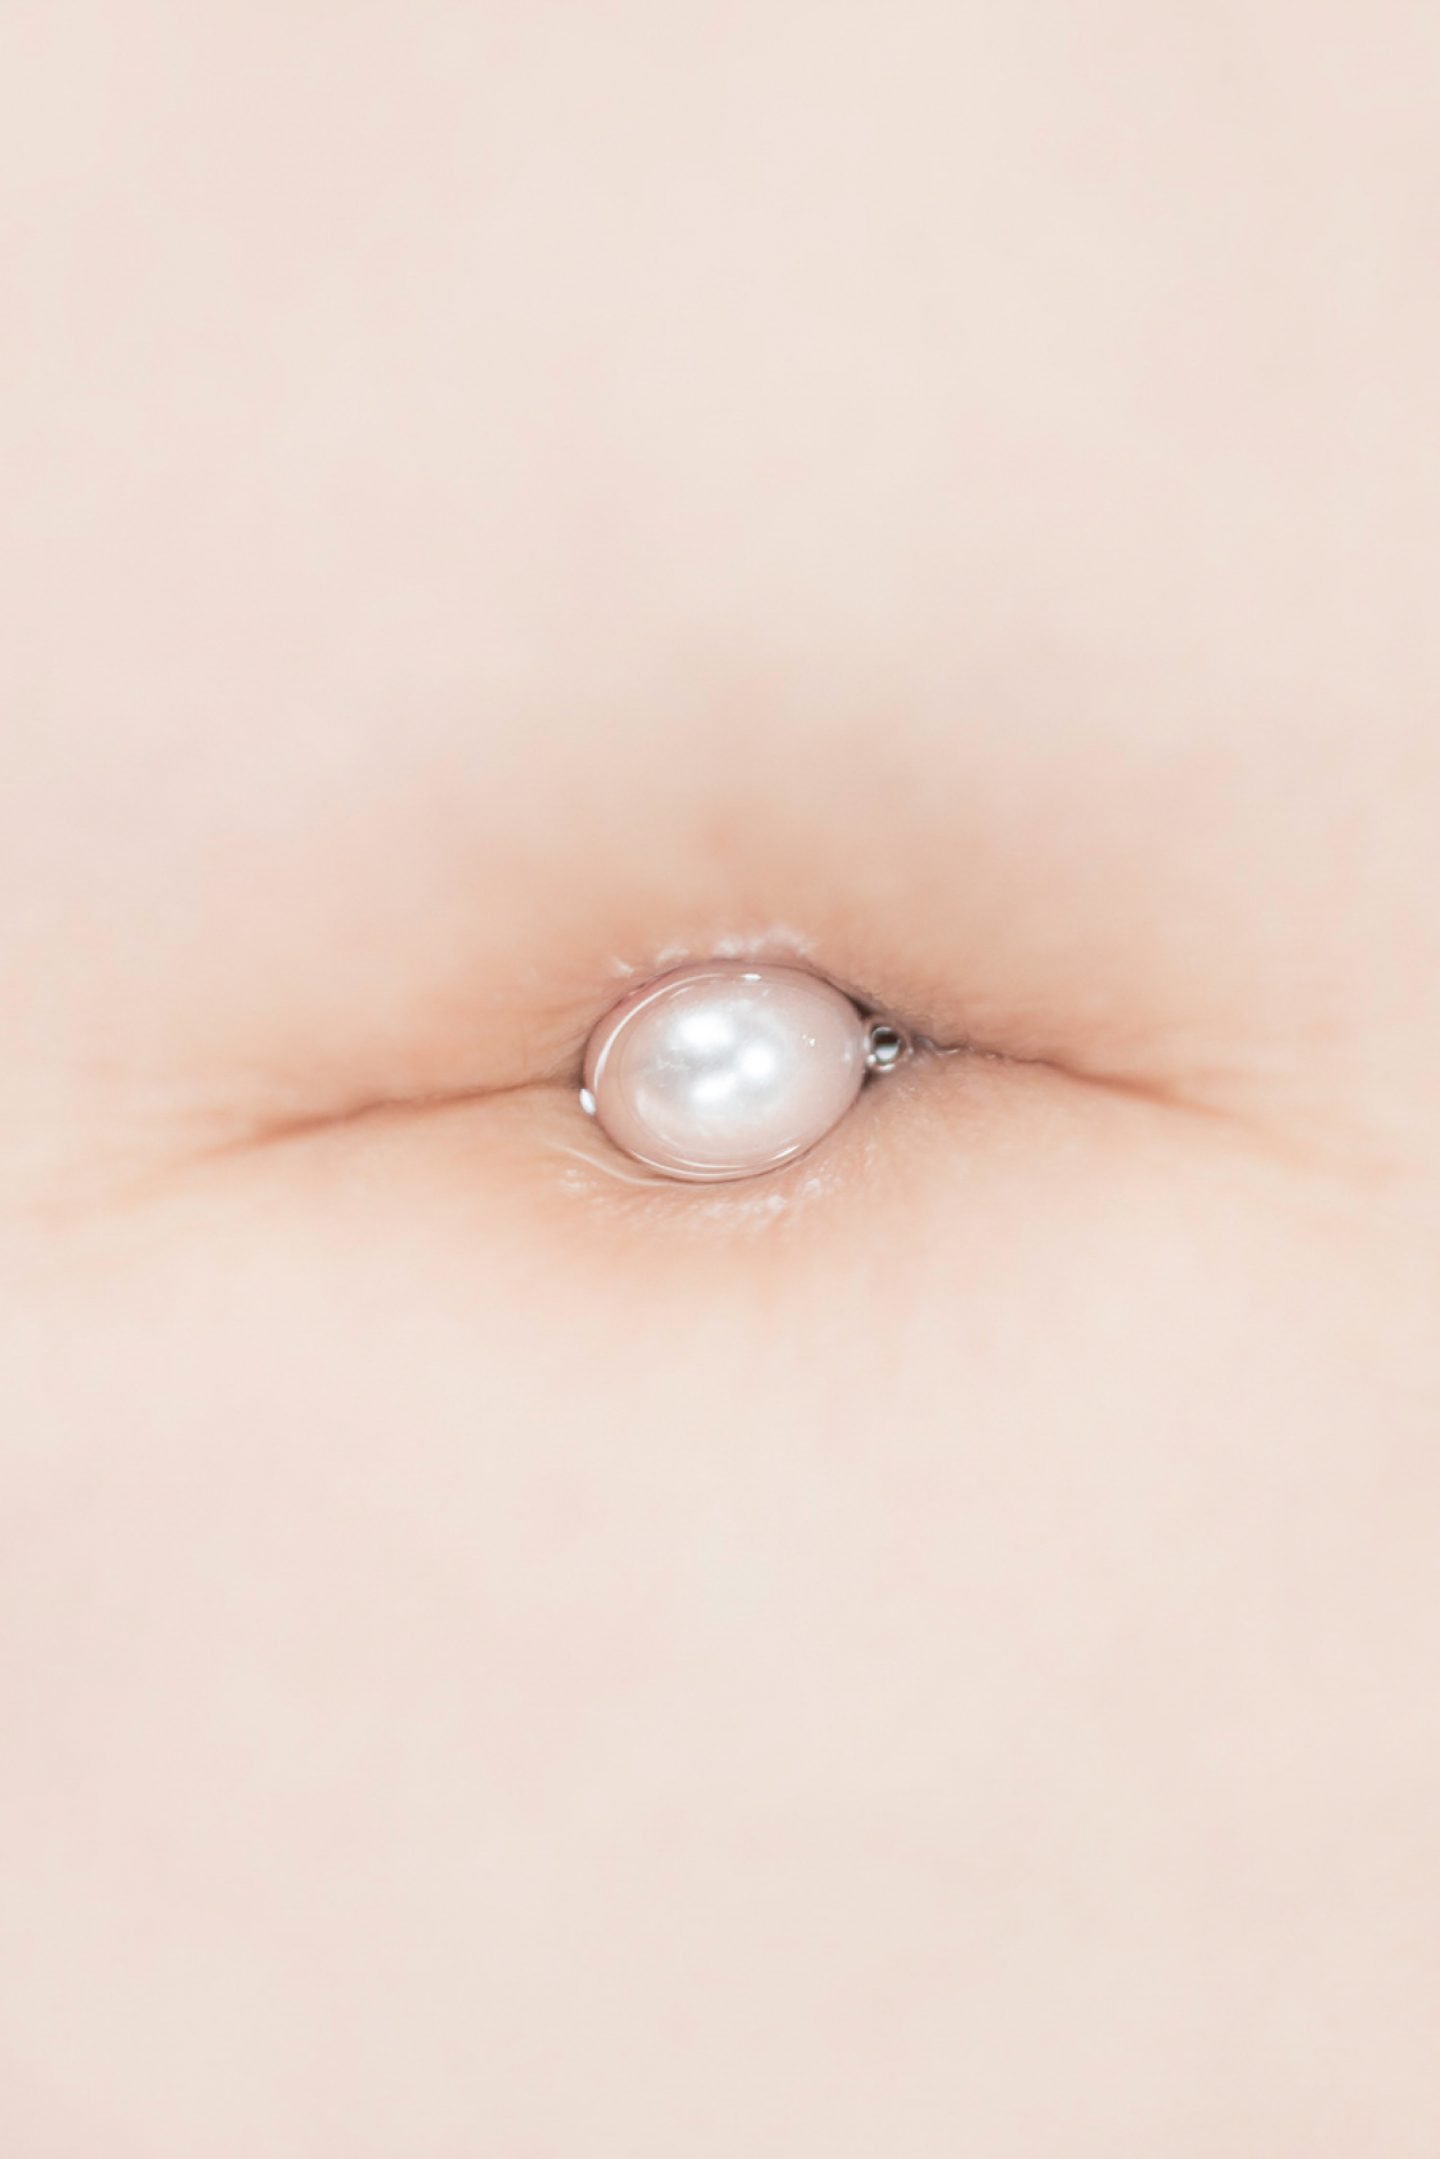 iGNANT_Photography_Prue_Stent_Honey_Long_Soft_Tissue_ (8 von 10)